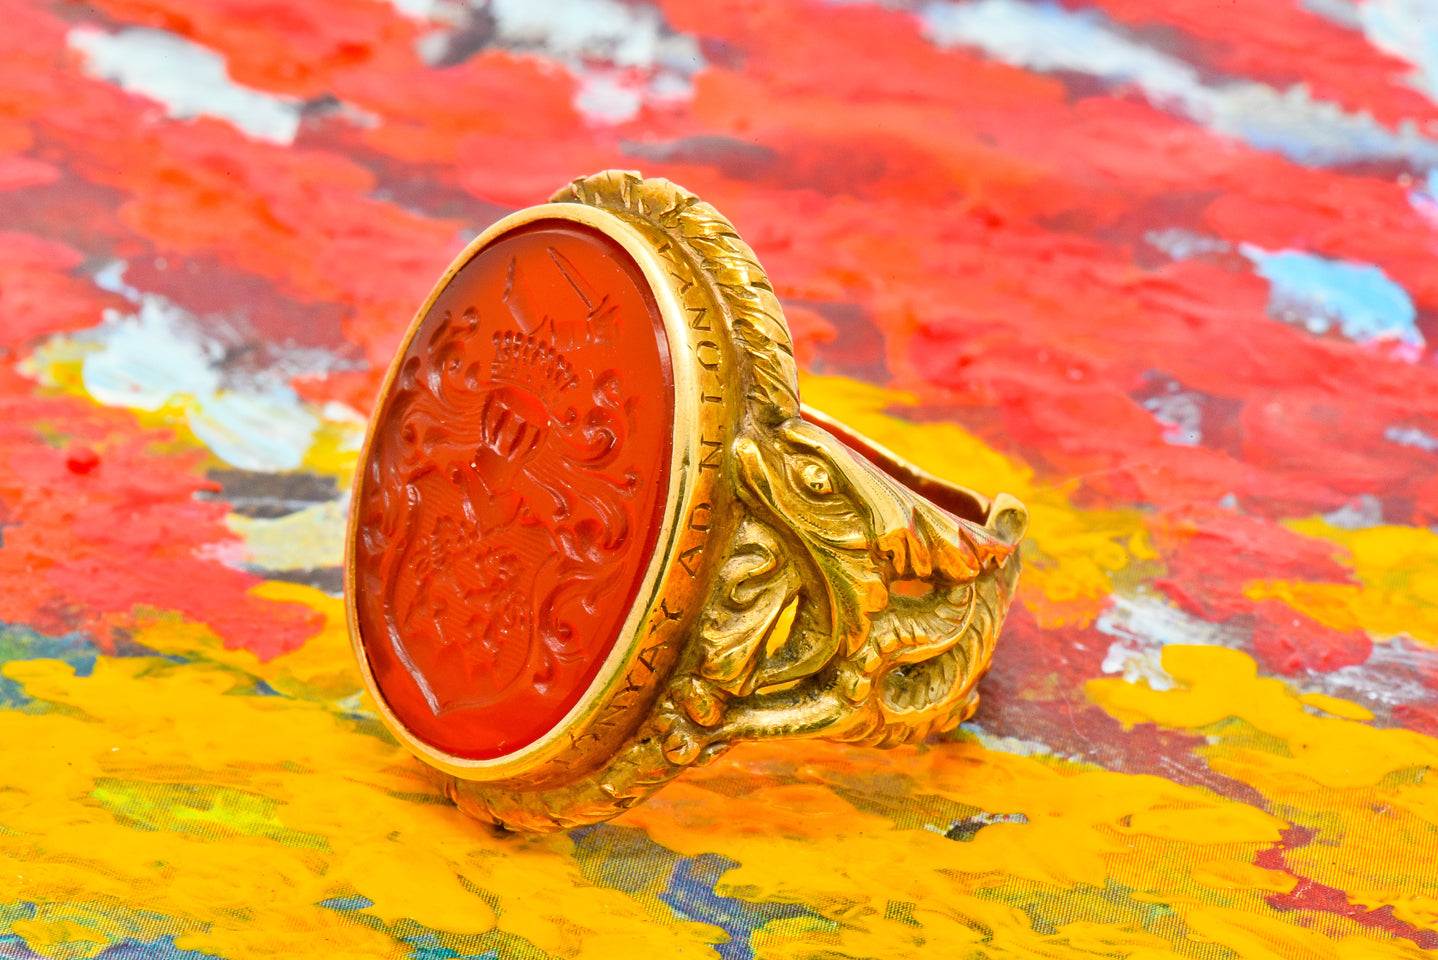 Carnelian Intaglio Signet Ring Dragon Heraldry Motif Art Nouveau Men's Antique Jewelry